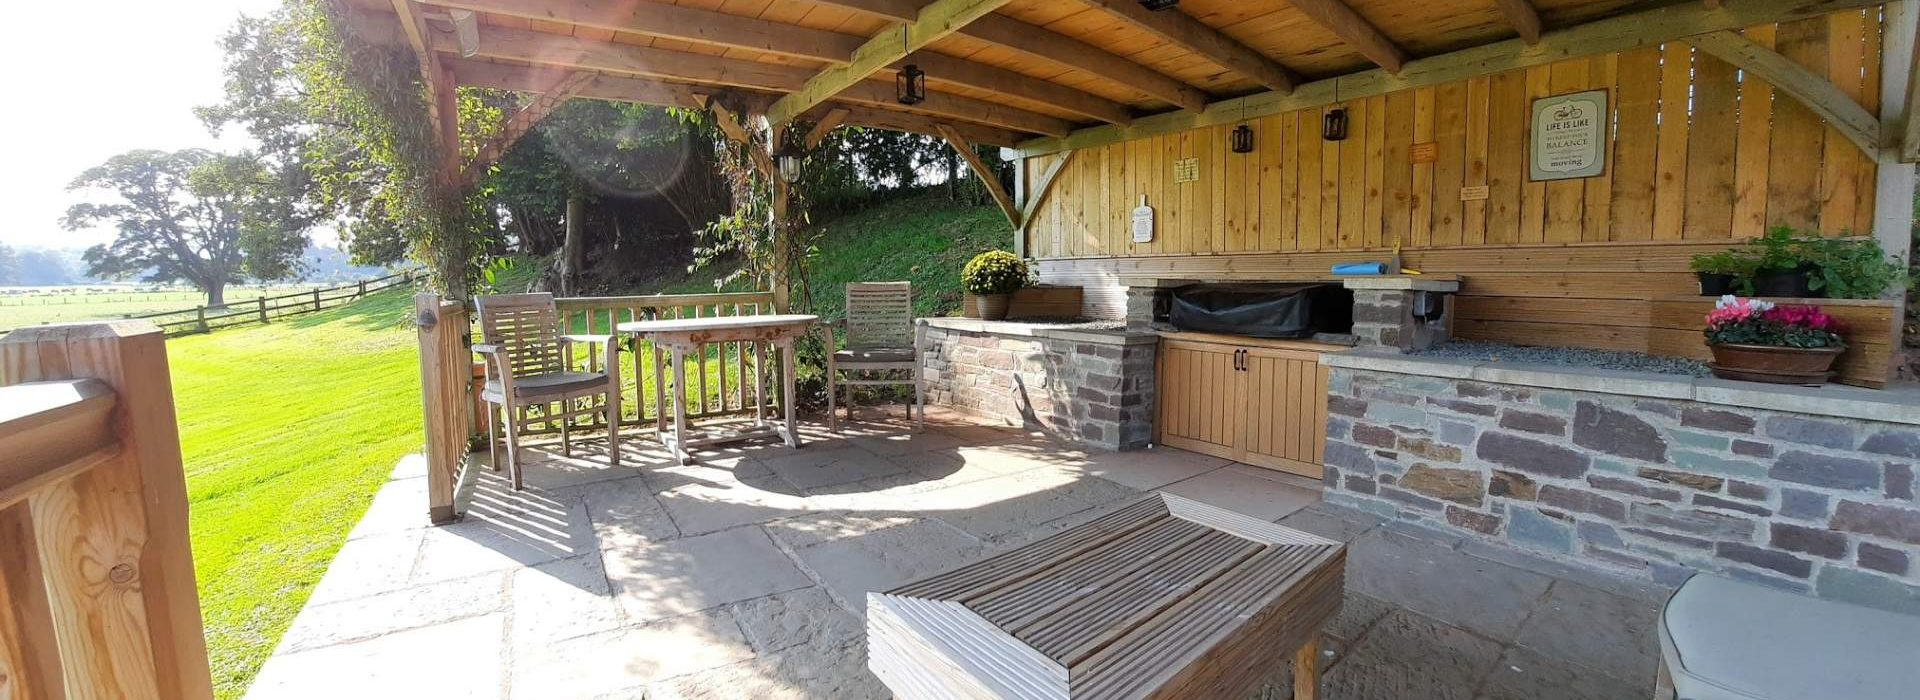 Pergola and BBQ area at the Lodge Brecon B&B